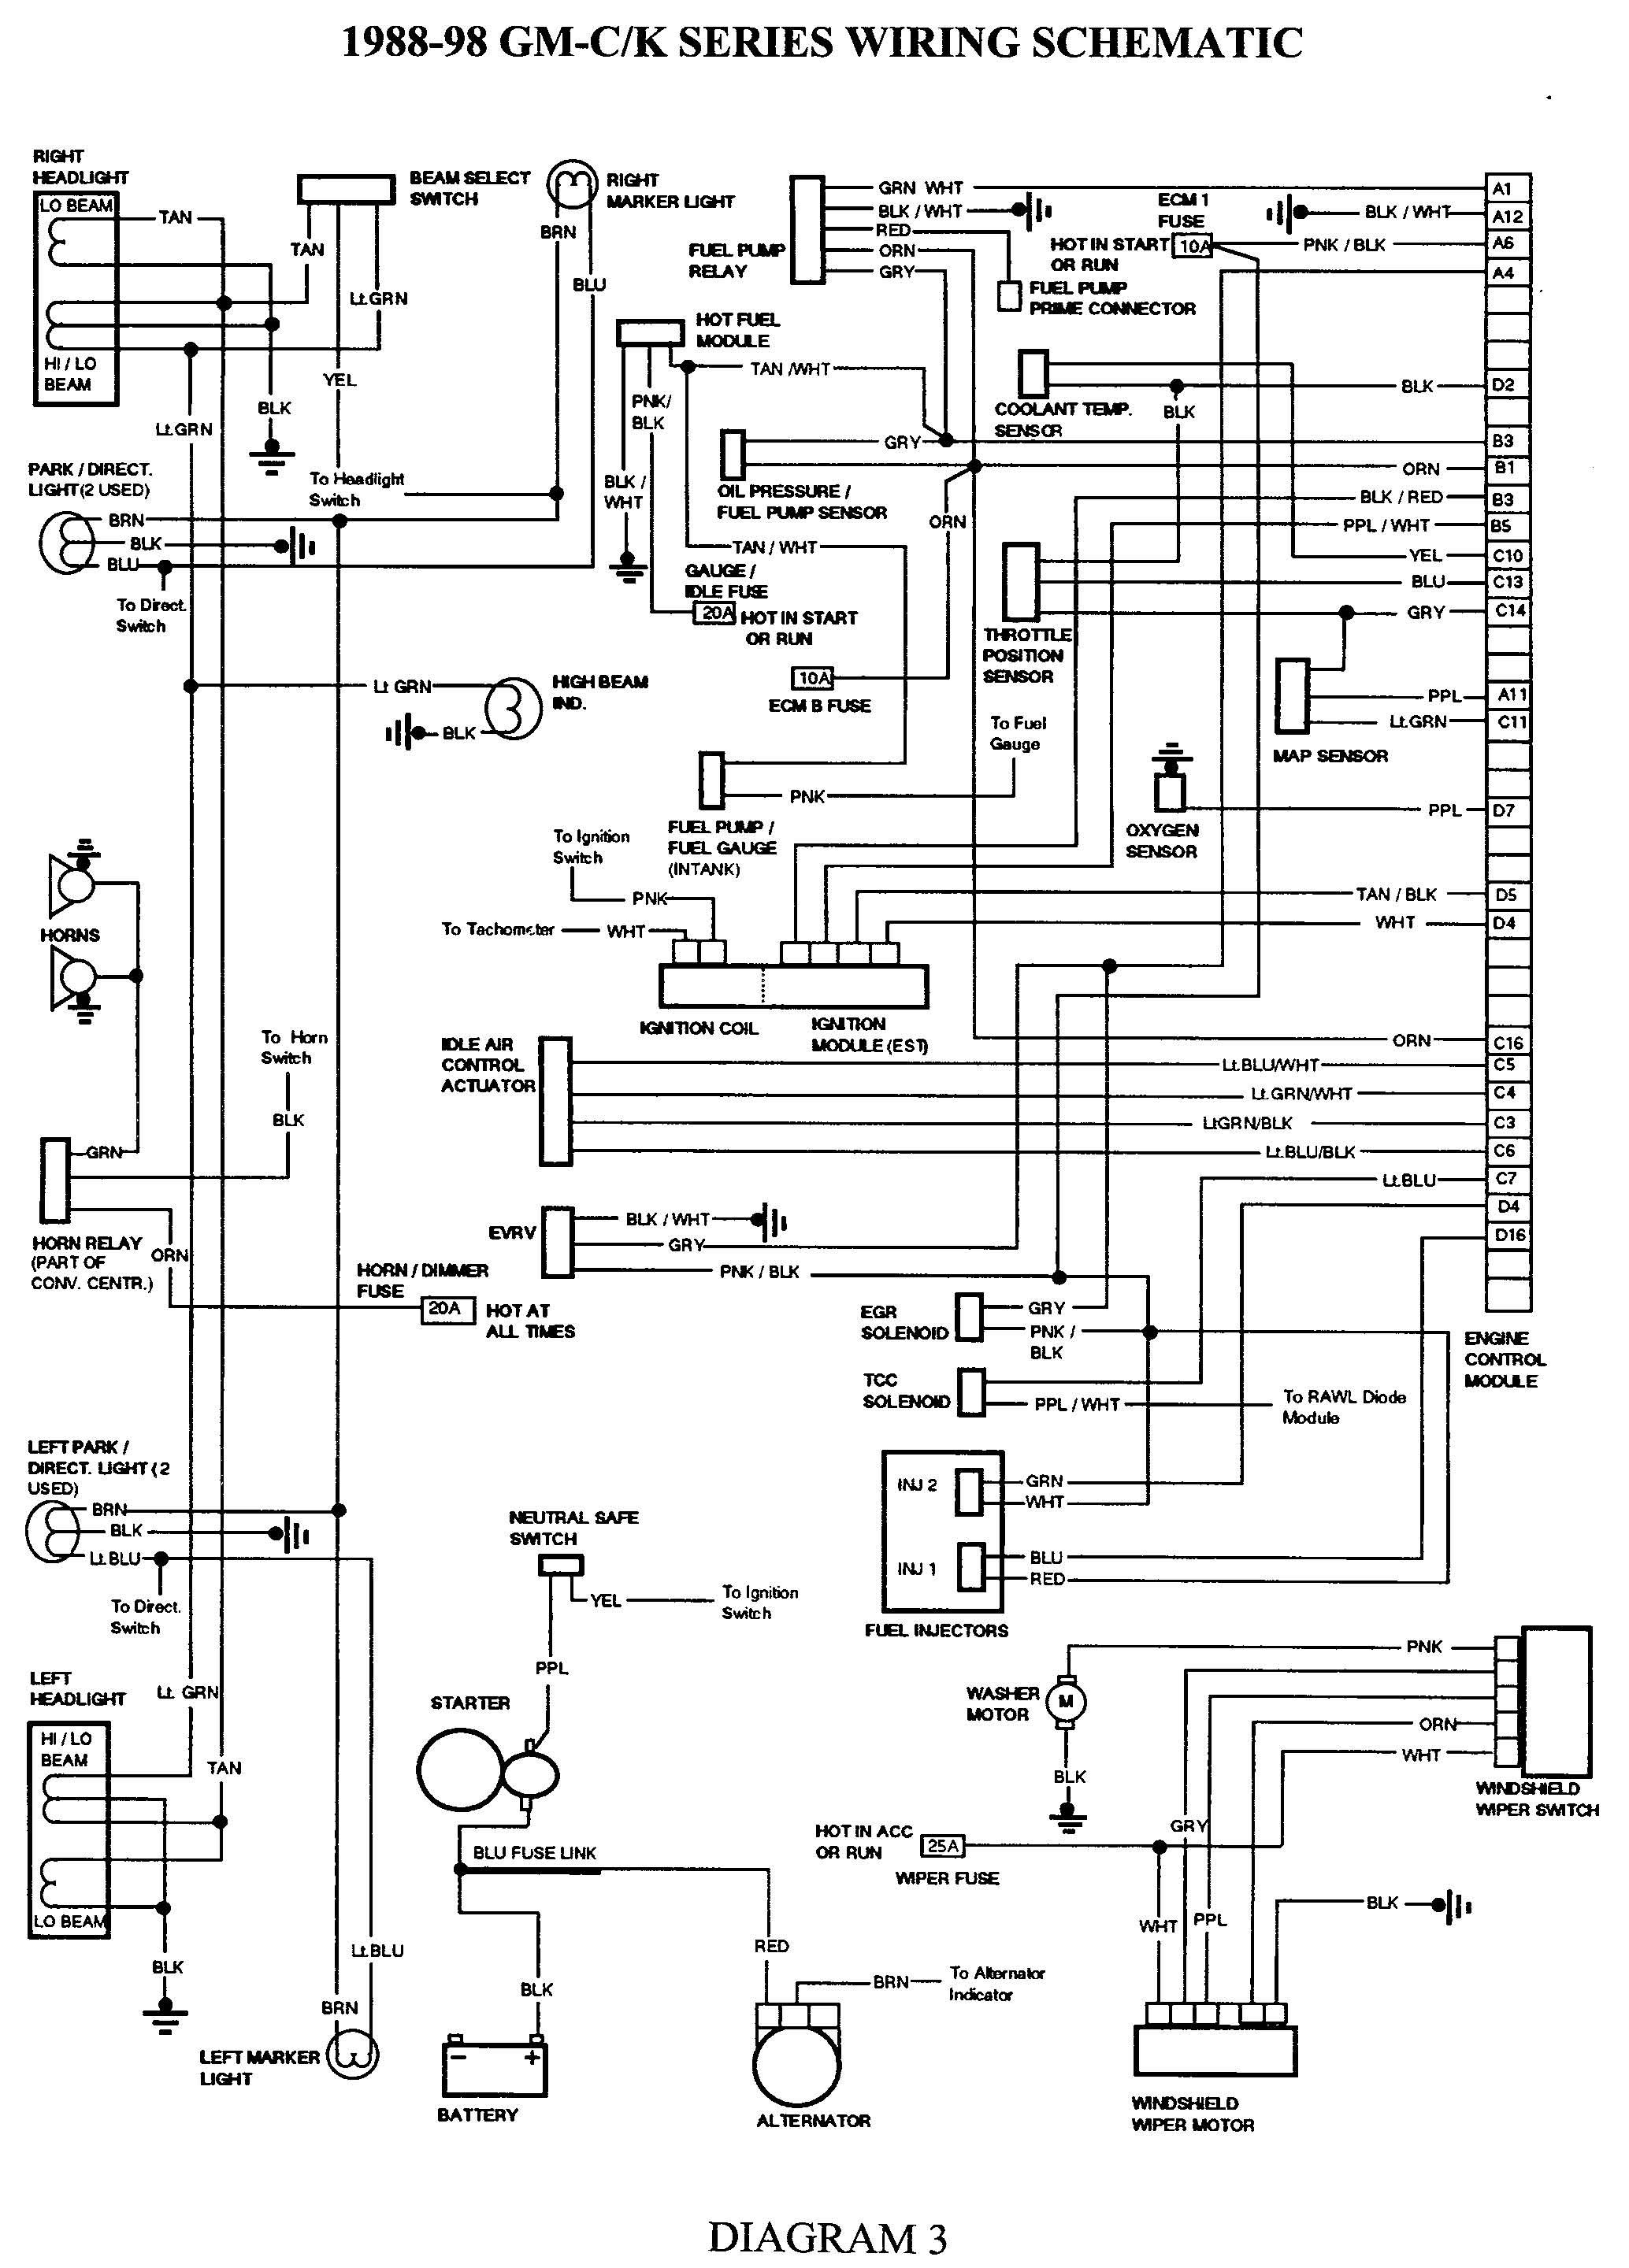 delco cs alternator wiring diagram for car stereo sony gmc great installation of truck diagrams on gm harness 88 98 kc rh pinterest com one wire